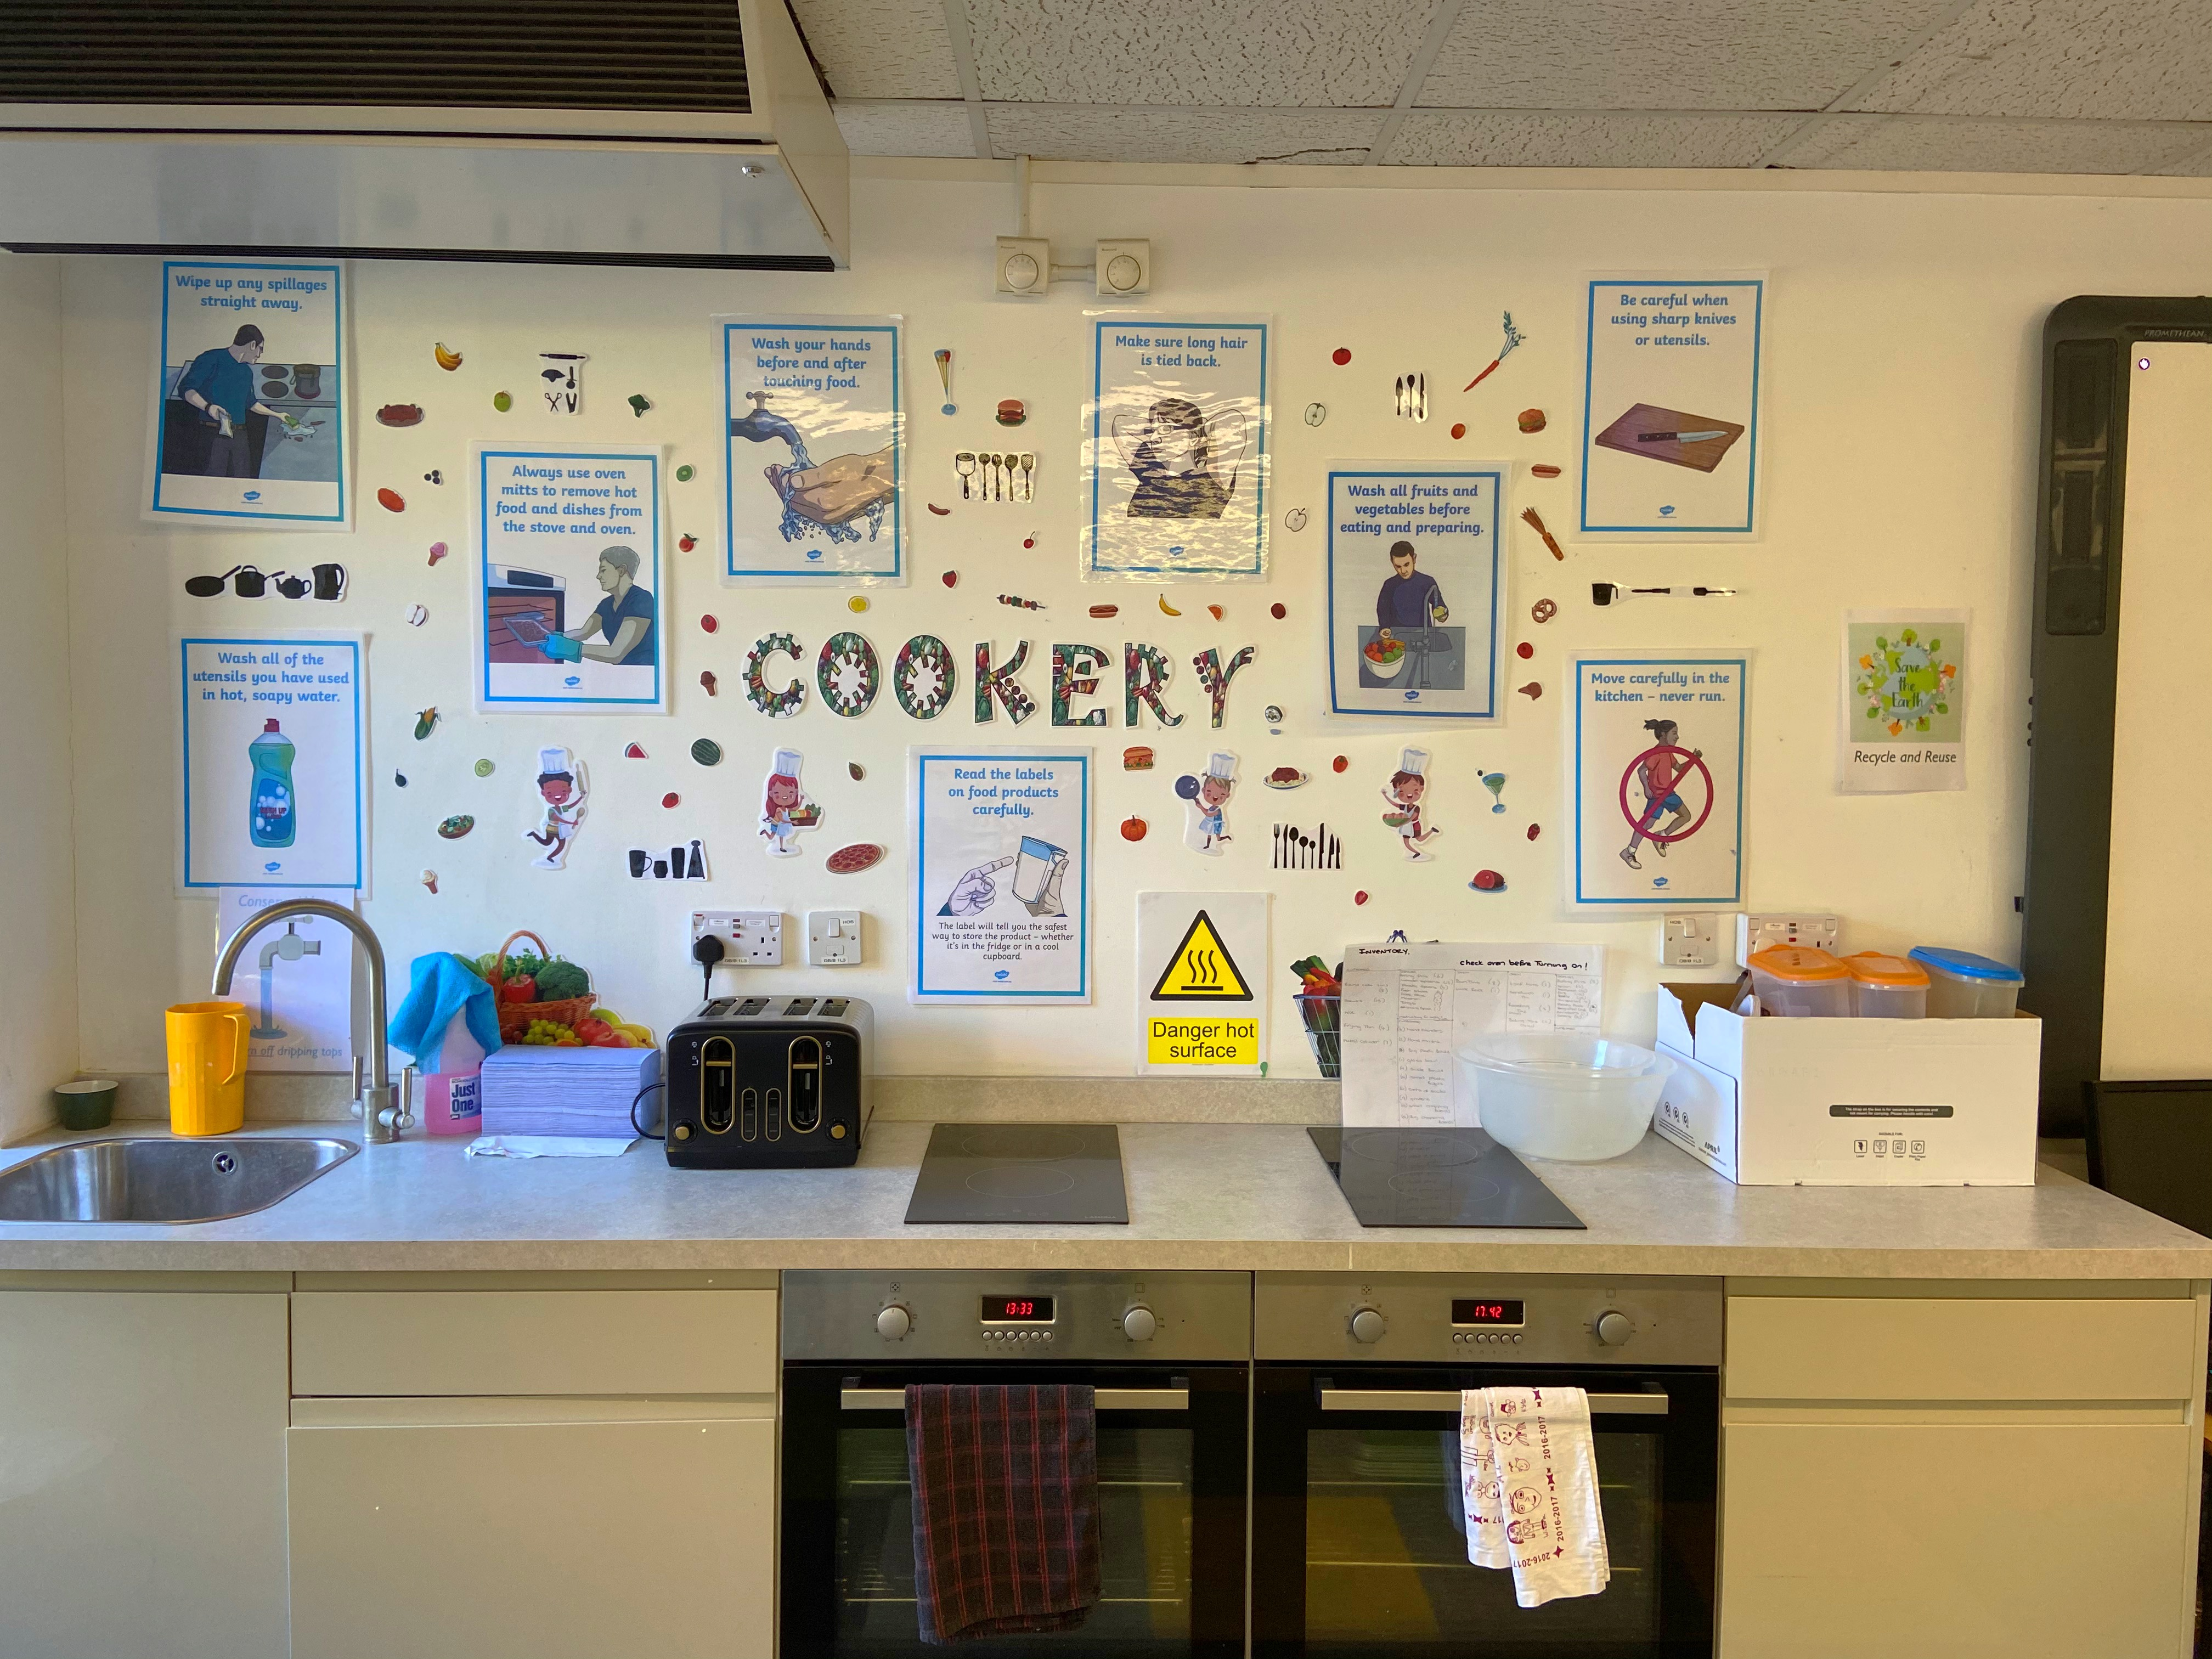 Dedicated kitchen and cookery area for children